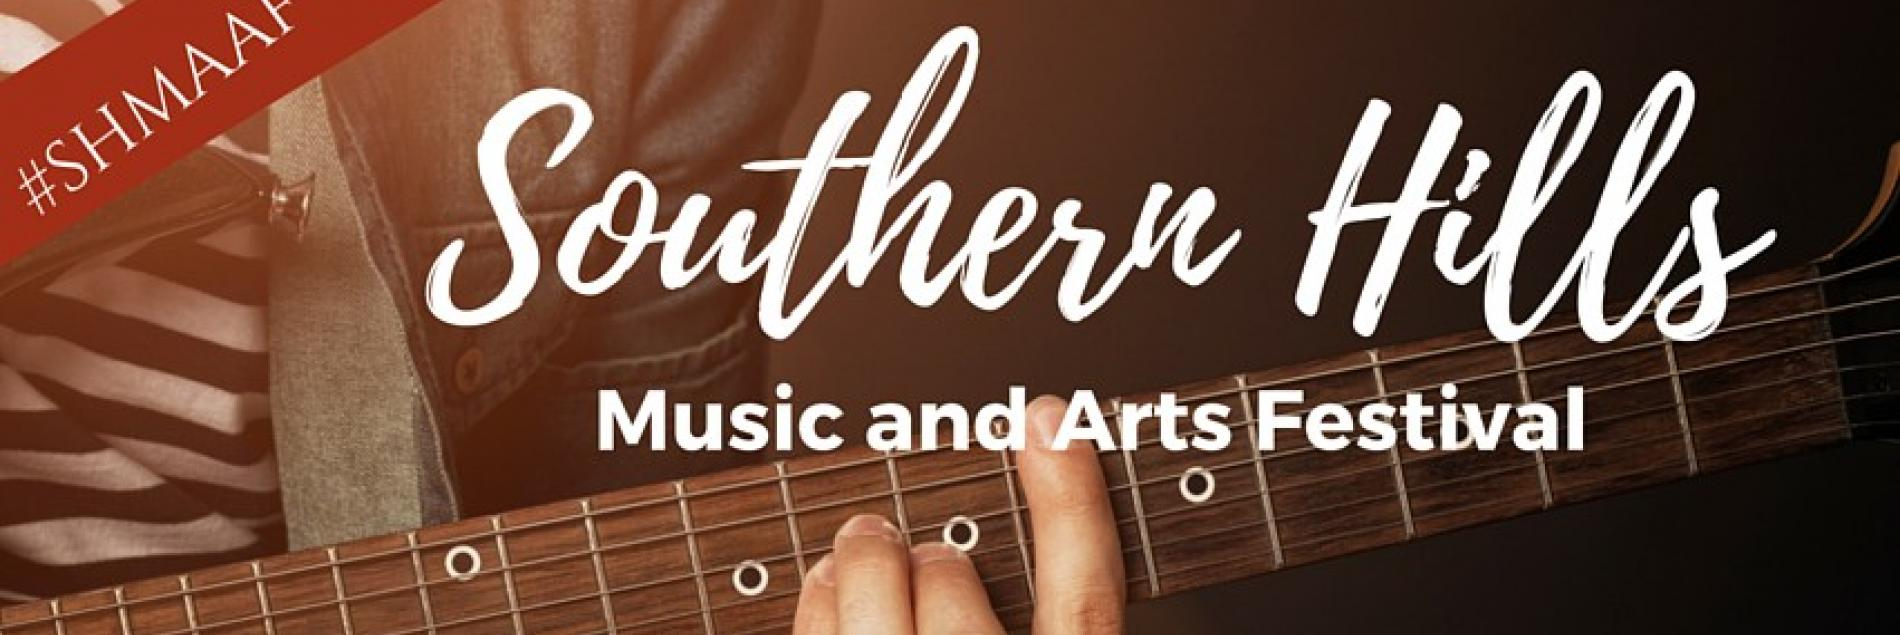 Southern Hills Music and Arts Festival (SHMAAF)